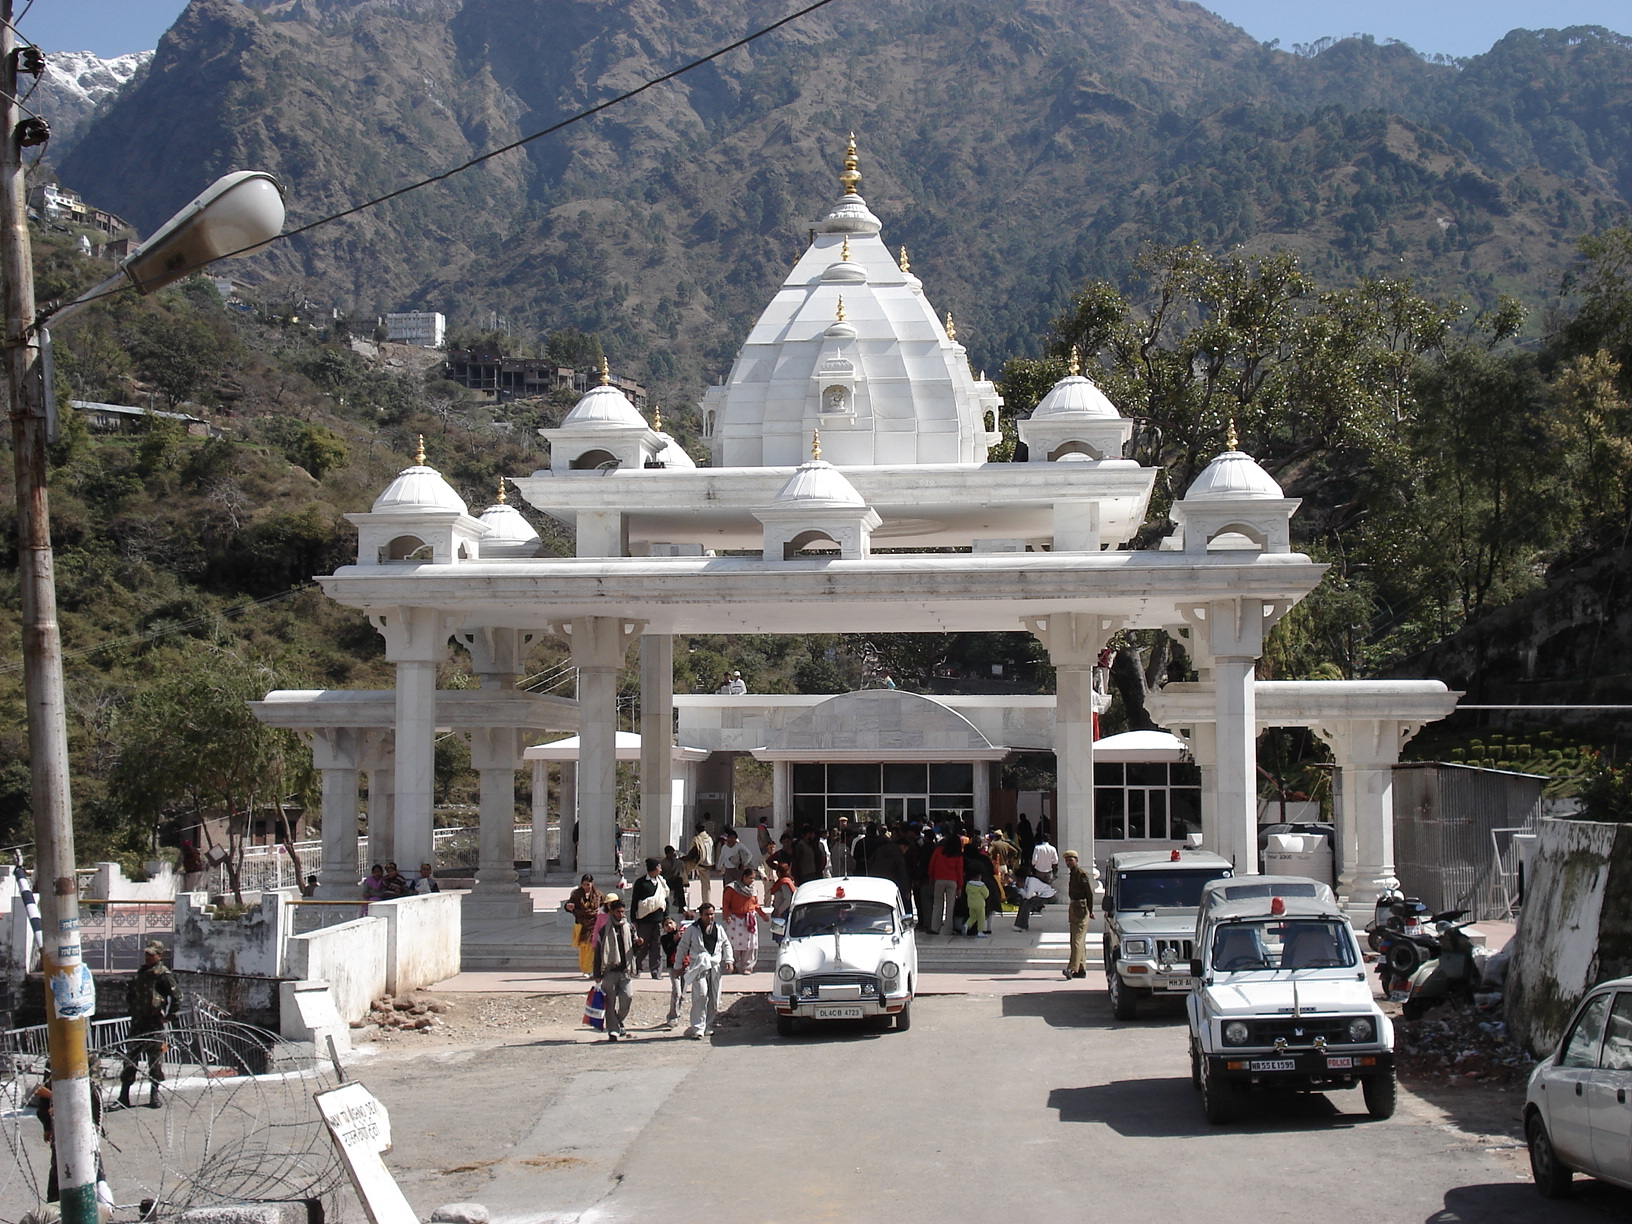 helicopter katra vaishno devi with Photo Gallery on Pkg Dtl Vaishno Devi Navratri Special Package additionally Katra Bangang Adkuwari Vaishno Devi moreover Free acc as well Photo Gallery in addition Yatra To Mata Vaishnodevi Cave Shrine.